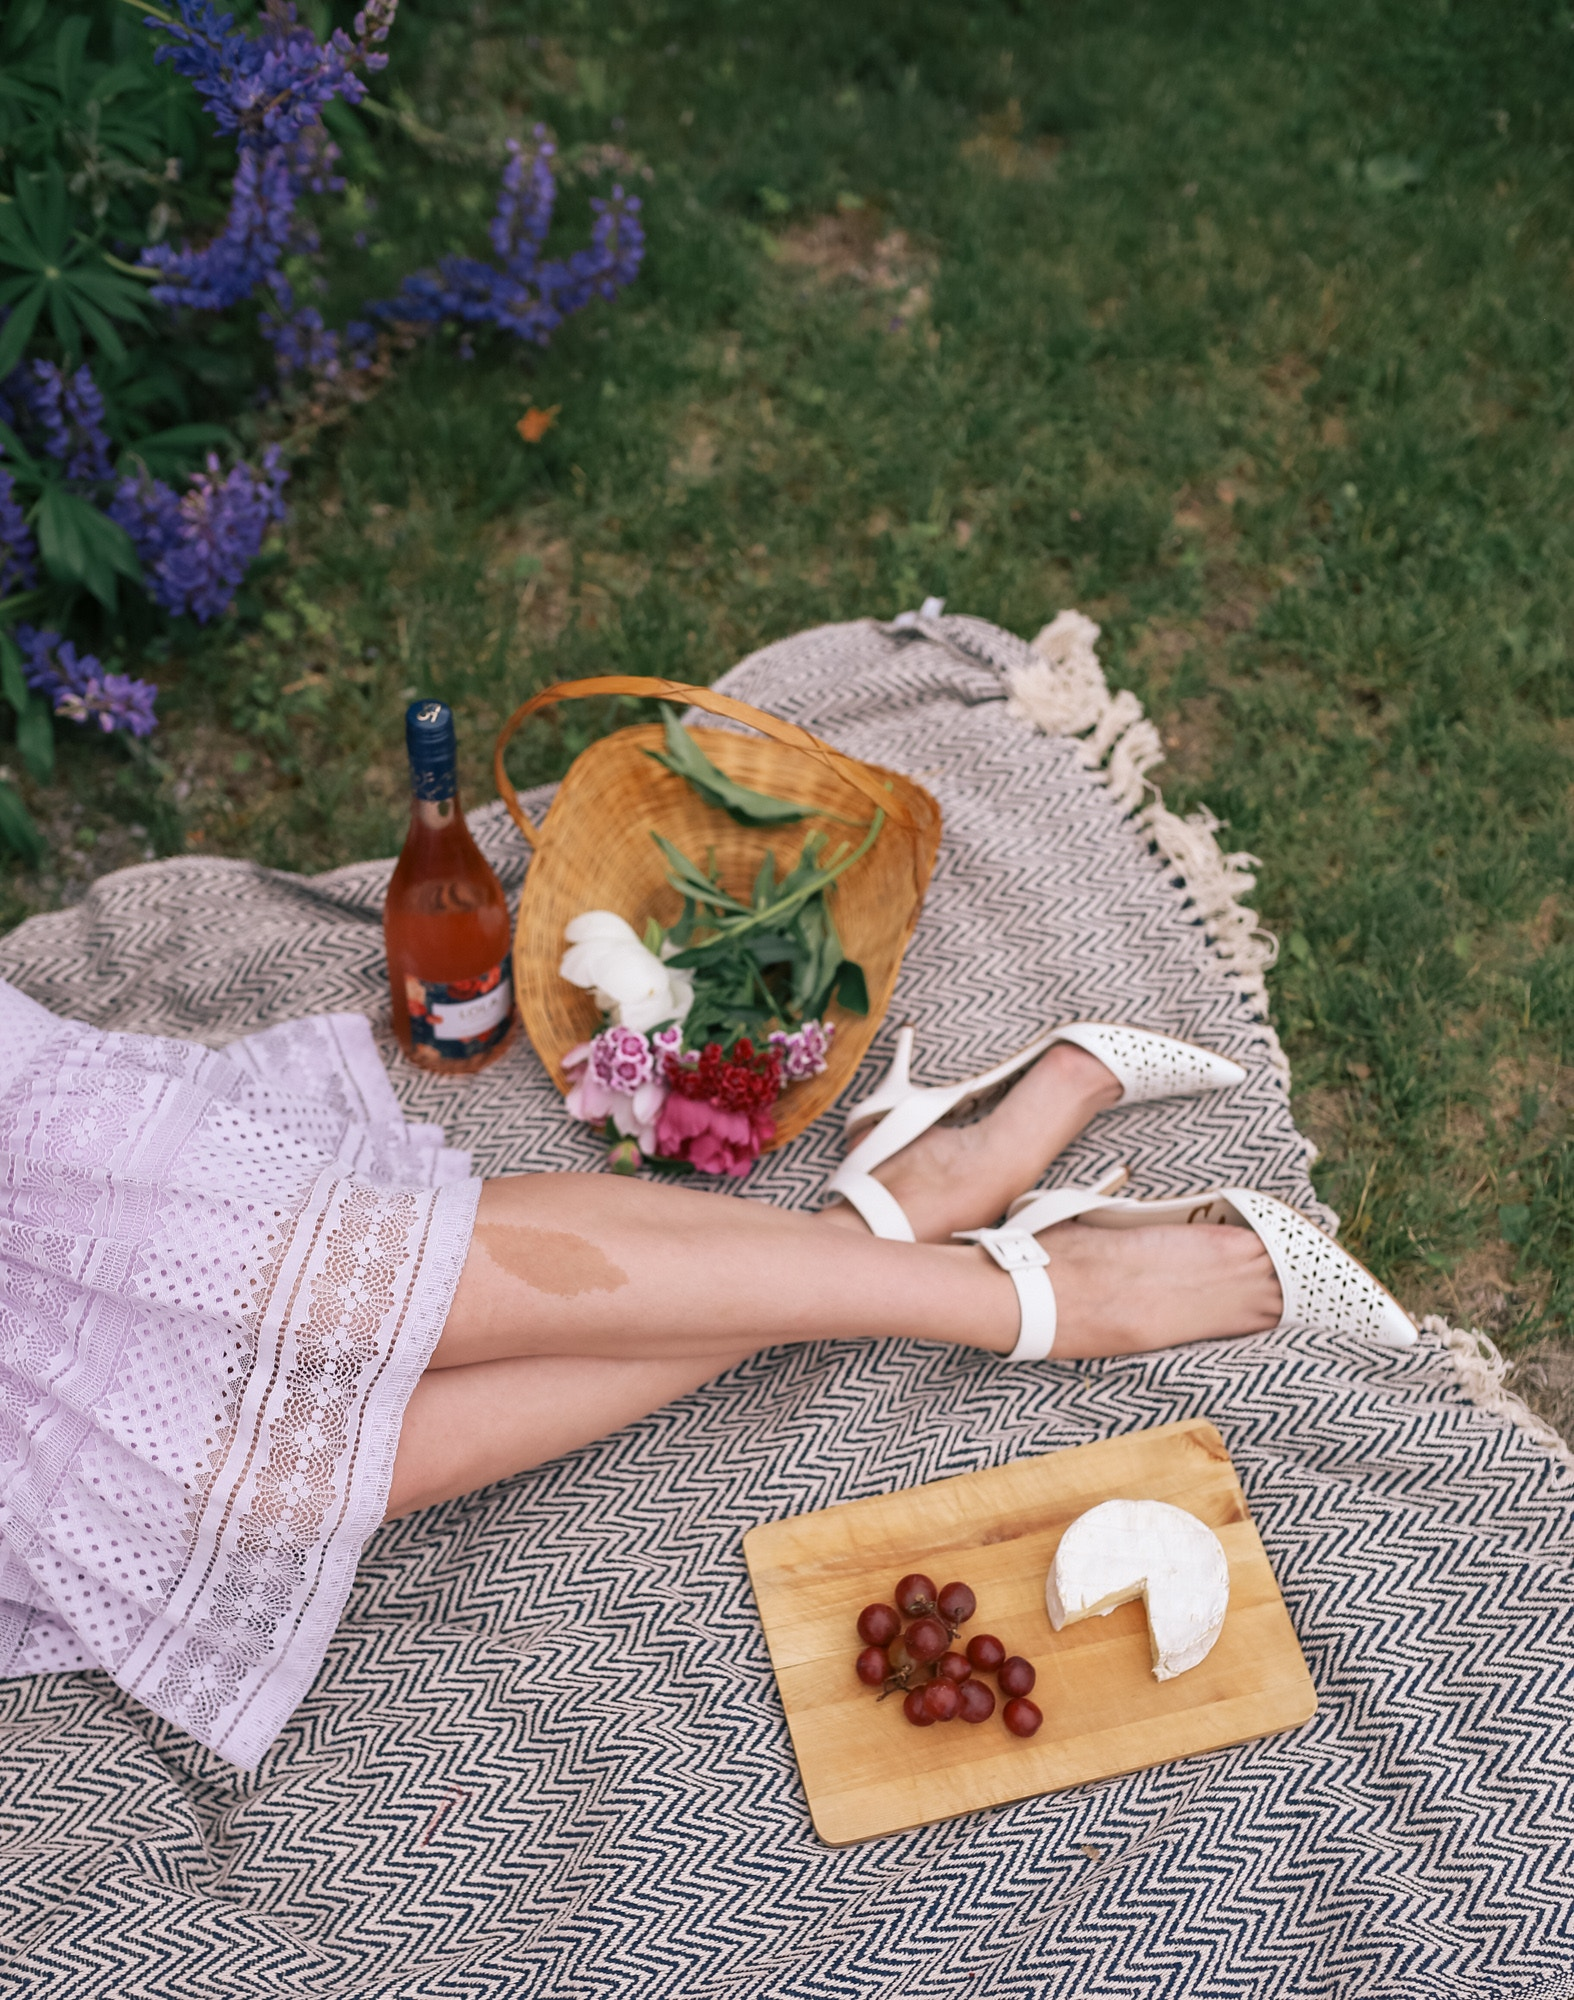 The Perfect Picnic setup: Pretty lace midi dress from Rachel Parcell at Nordstrom, Sam Edelman laser cut heels, brie, grapes and rose!